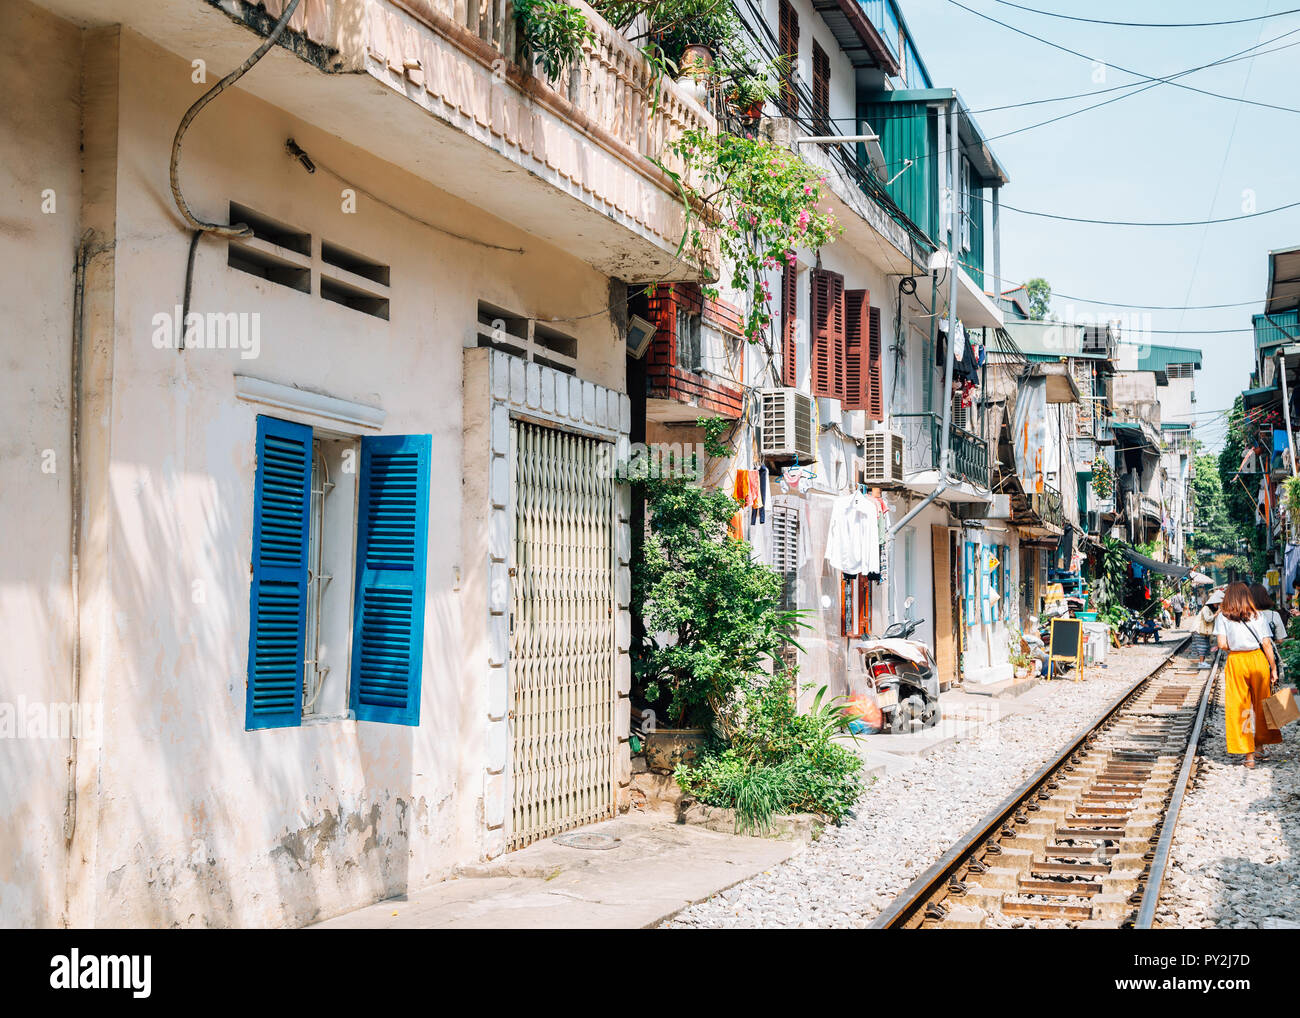 Hanoi train street, old house and railroad in Hanoi, Vietnam - Stock Image